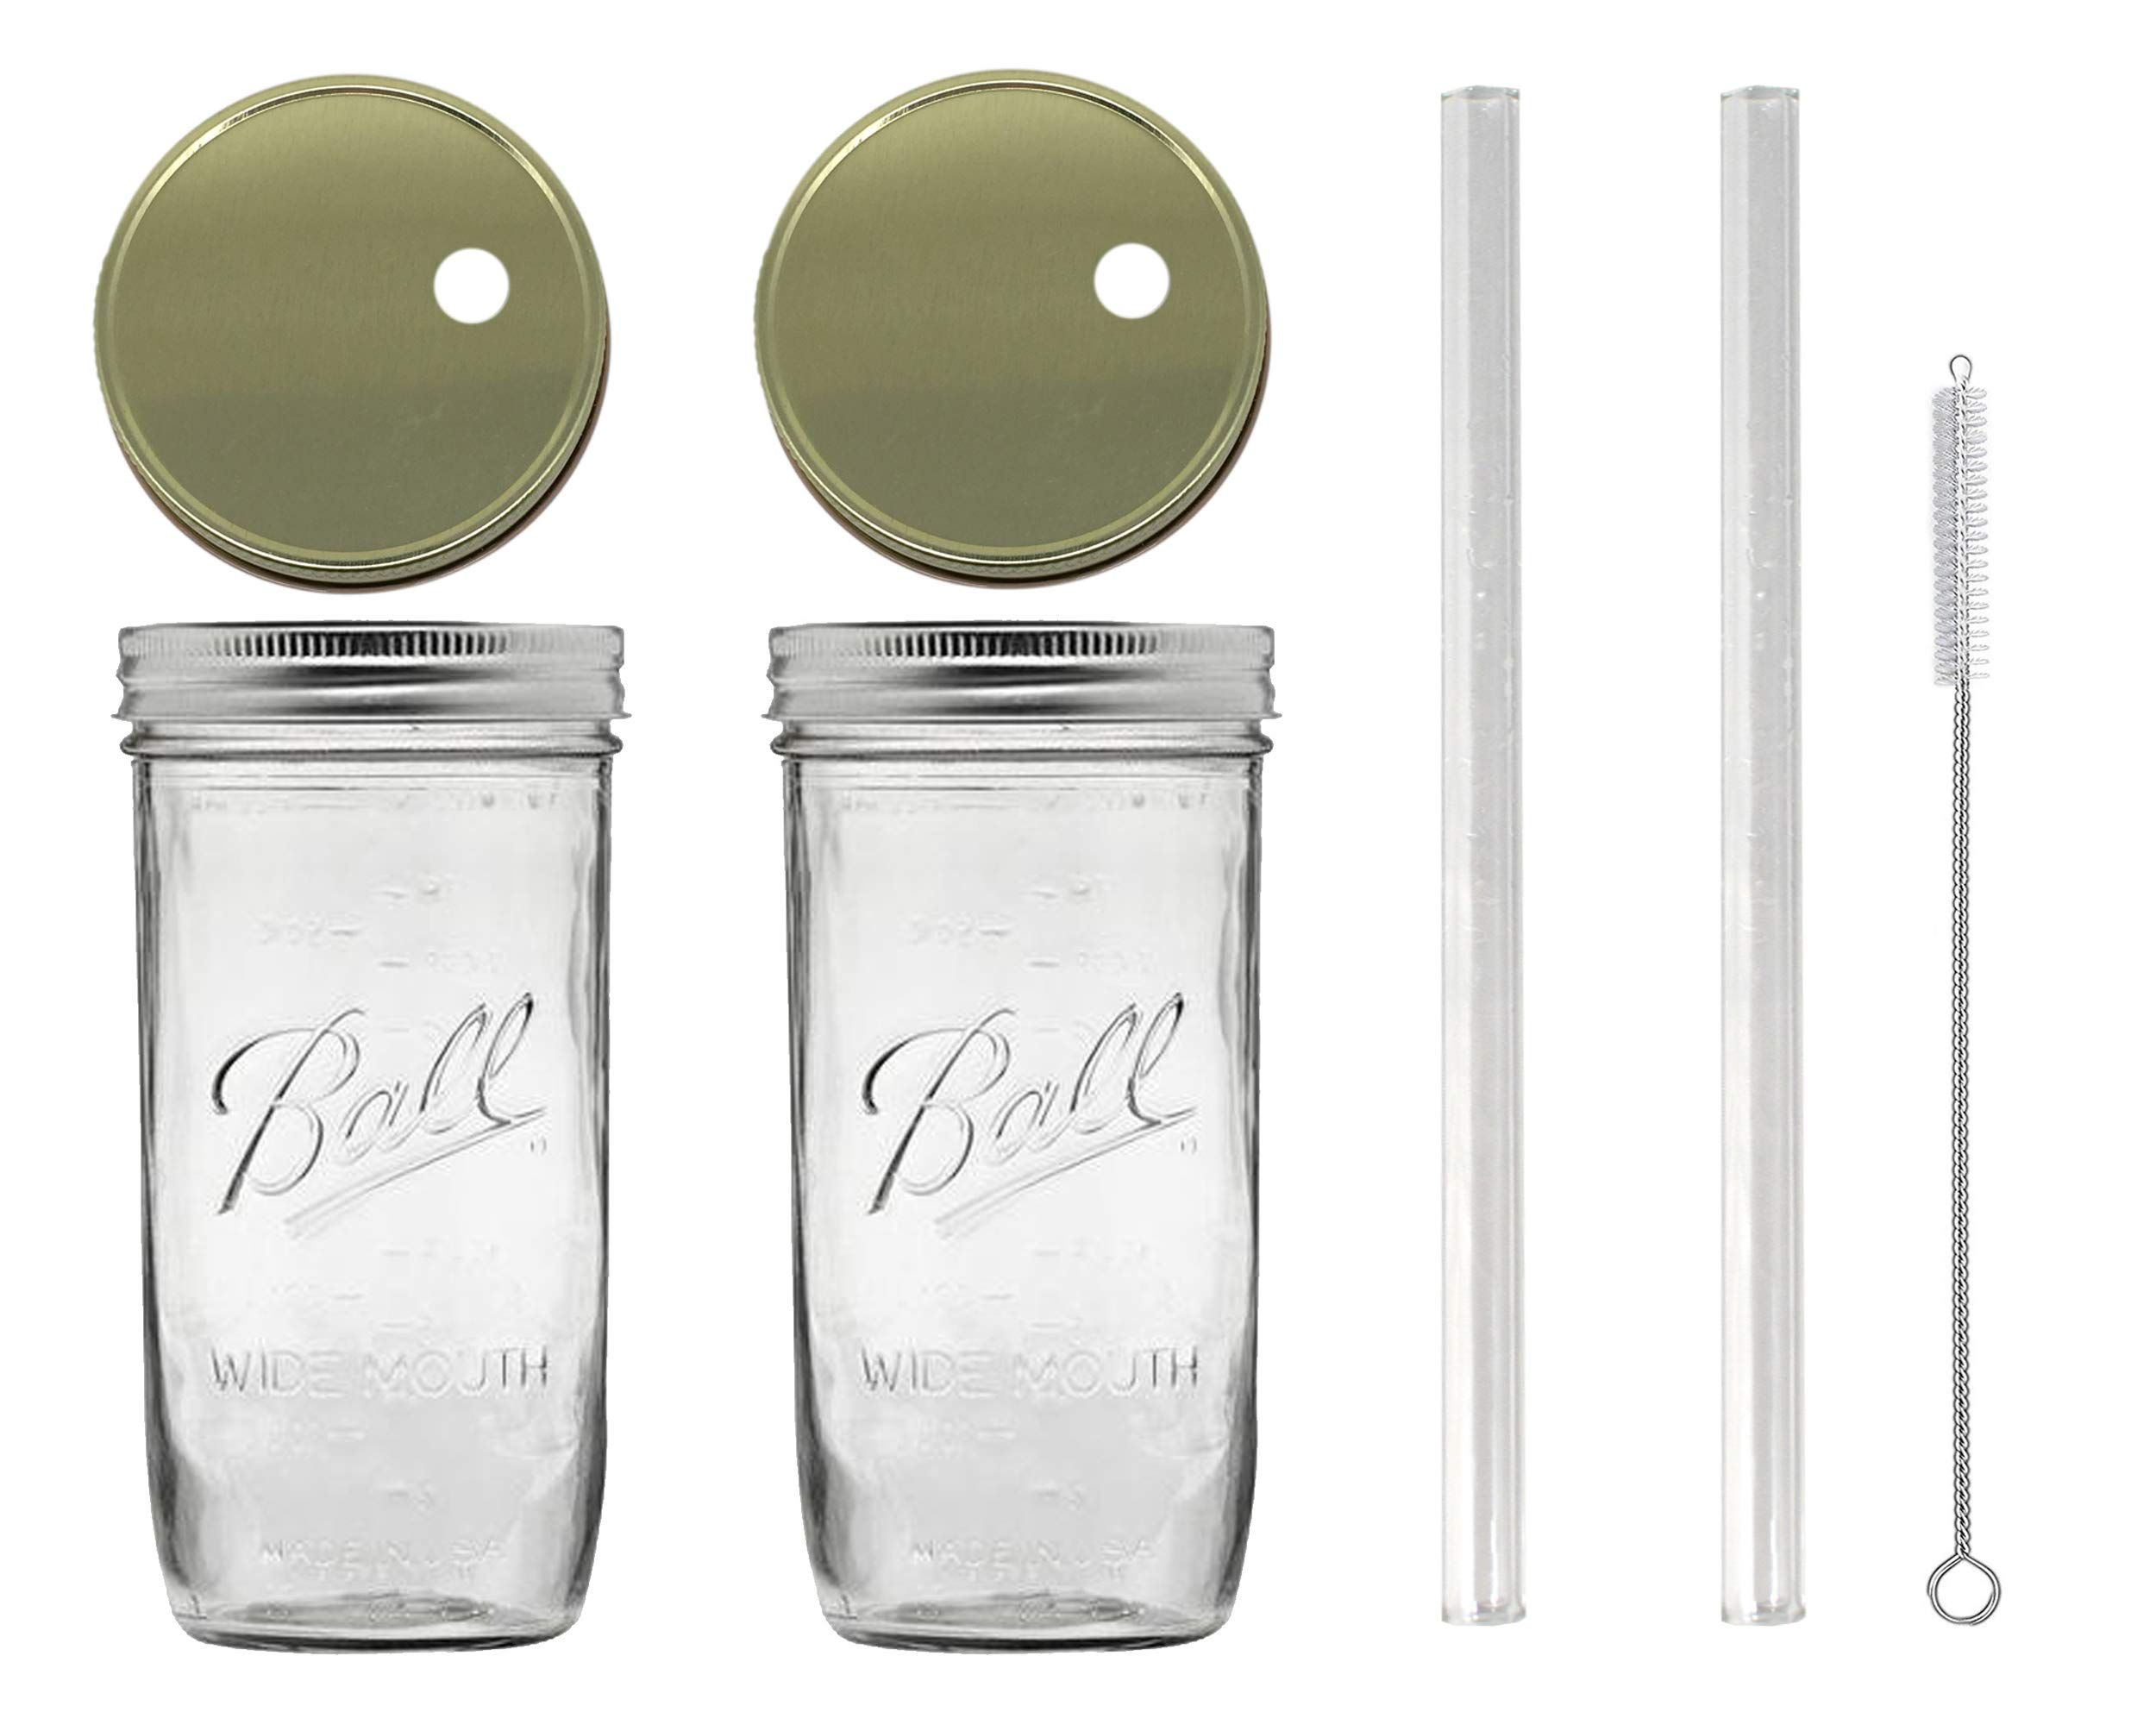 Glass Mason Drinking Jars with 2 Gold Lids, 2 Glass Straws (10''x 9.5mm) and 1 Straw Cleaner (24oz wide mouth, gold) (2) by Variety (Image #1)